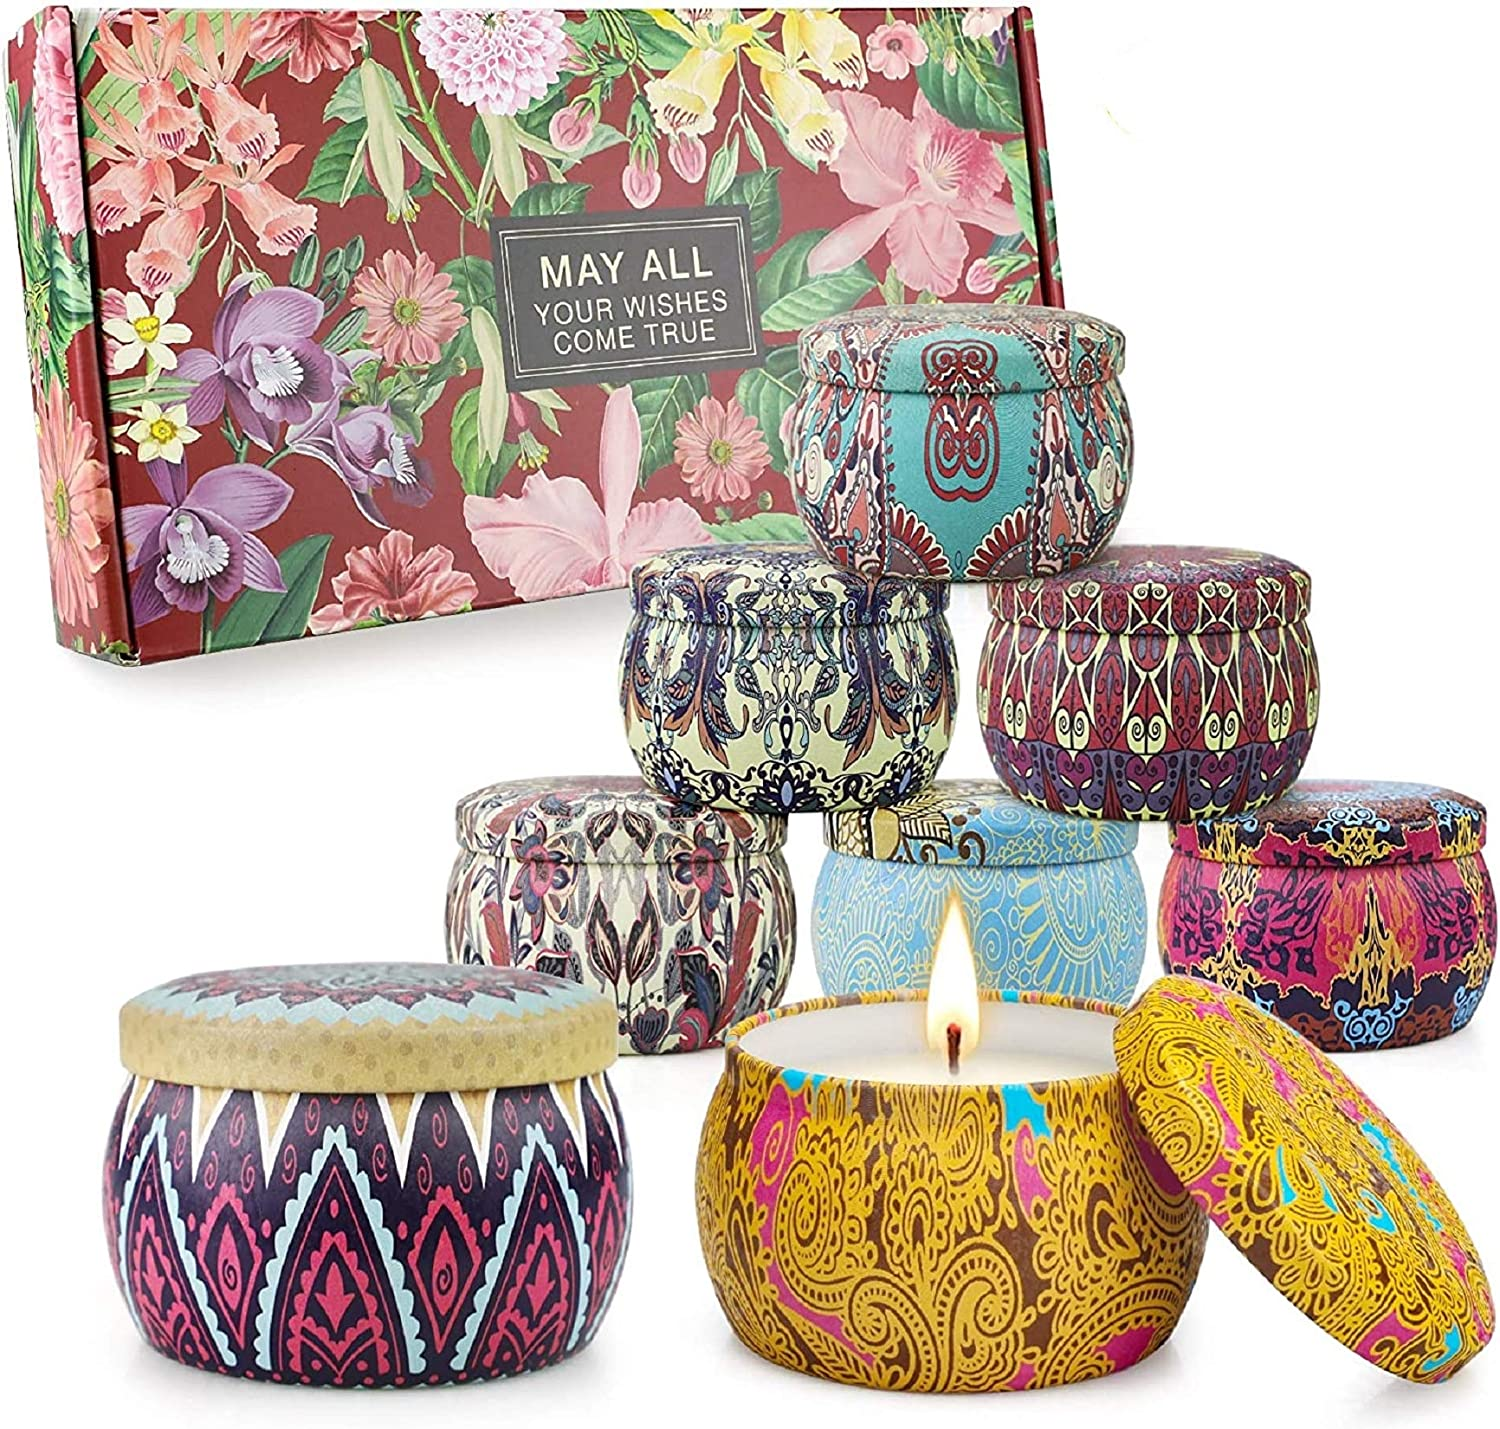 8 Pack Scented Candles Gifts Set for Women,Aromatherapy Candles for Home ,Soy Wax Portable Lid Tin Large 4.4 oz Thanksgiving Gifts Set for Yoga Birthday Gifts for Her